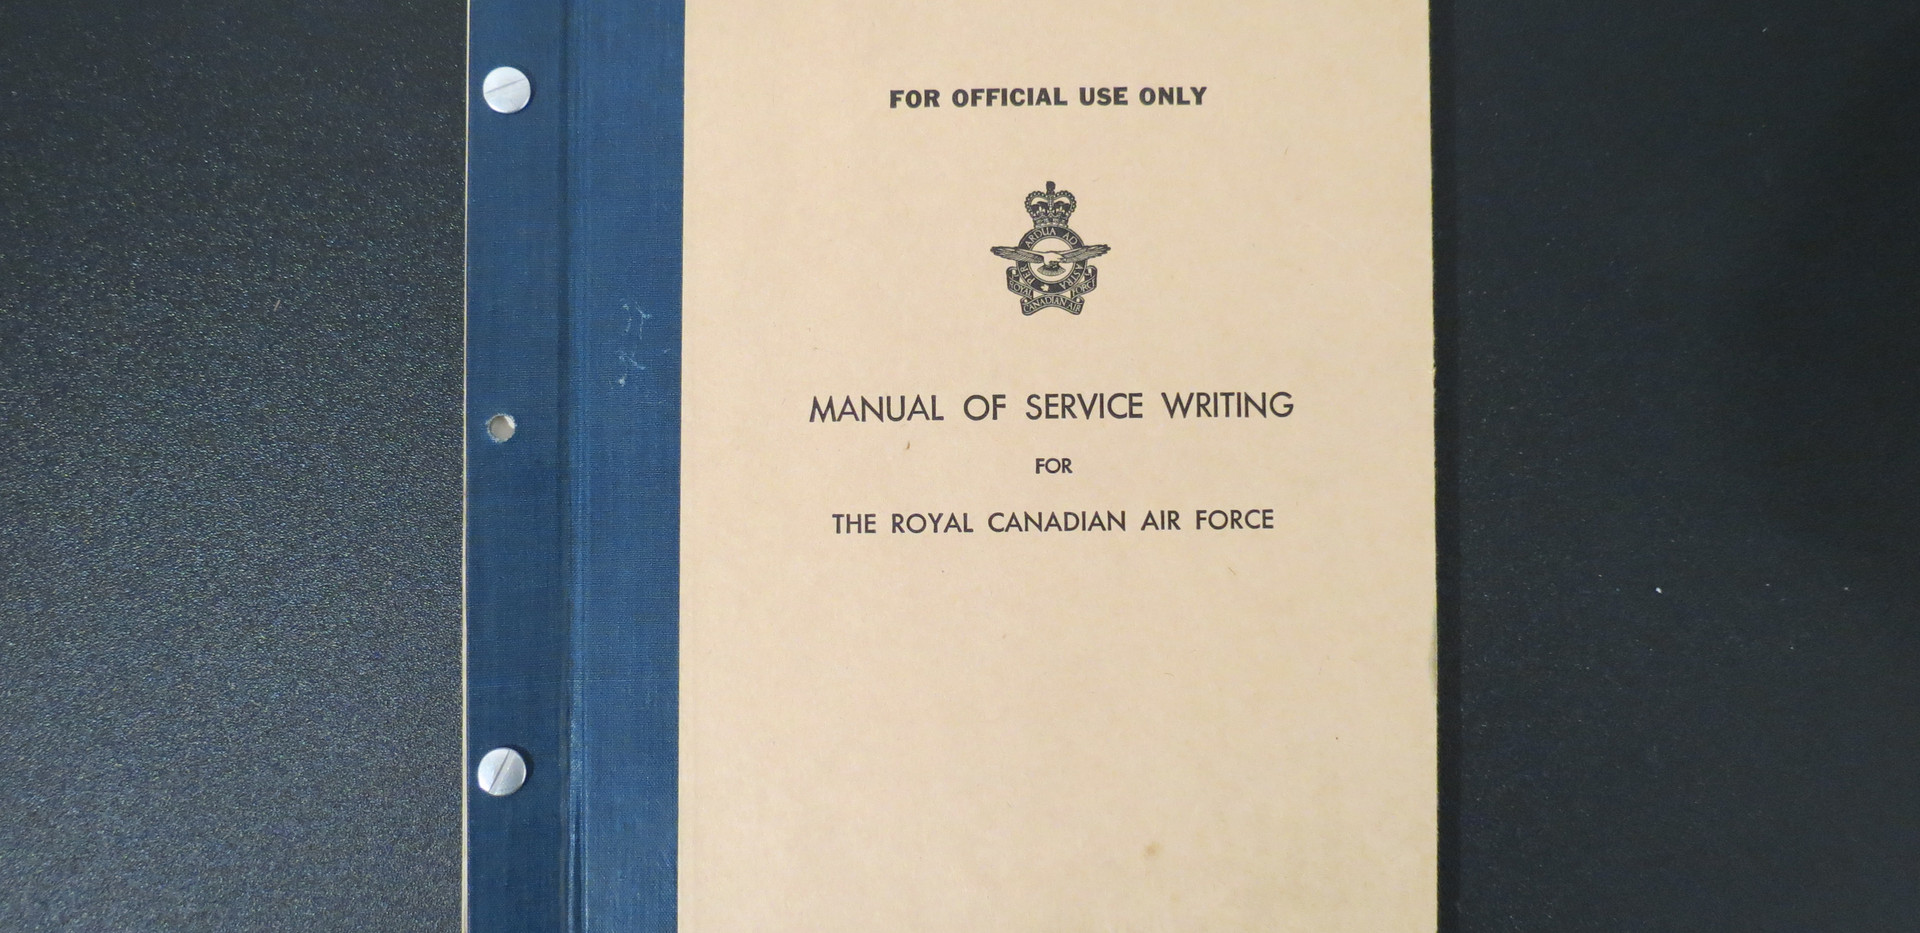 Manual of Service Writing